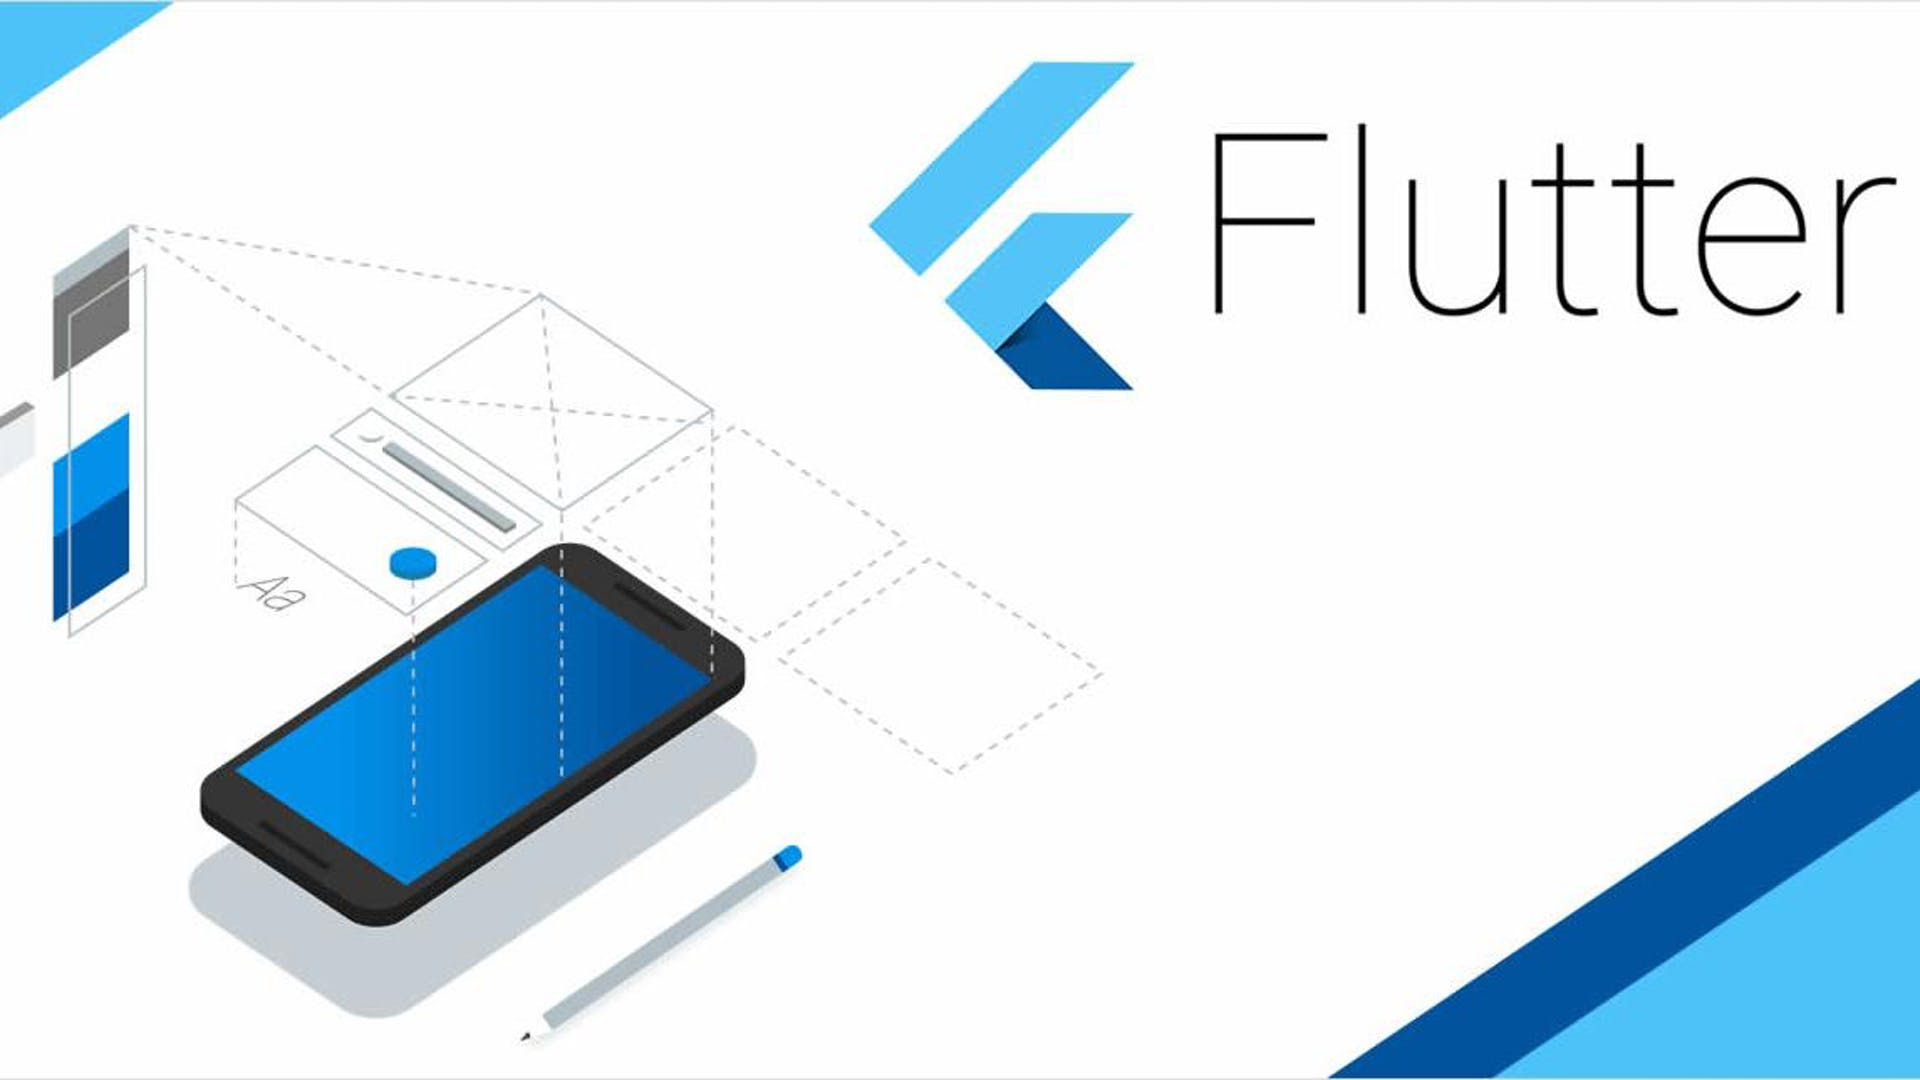 Why Flutter could be the future of mobile development